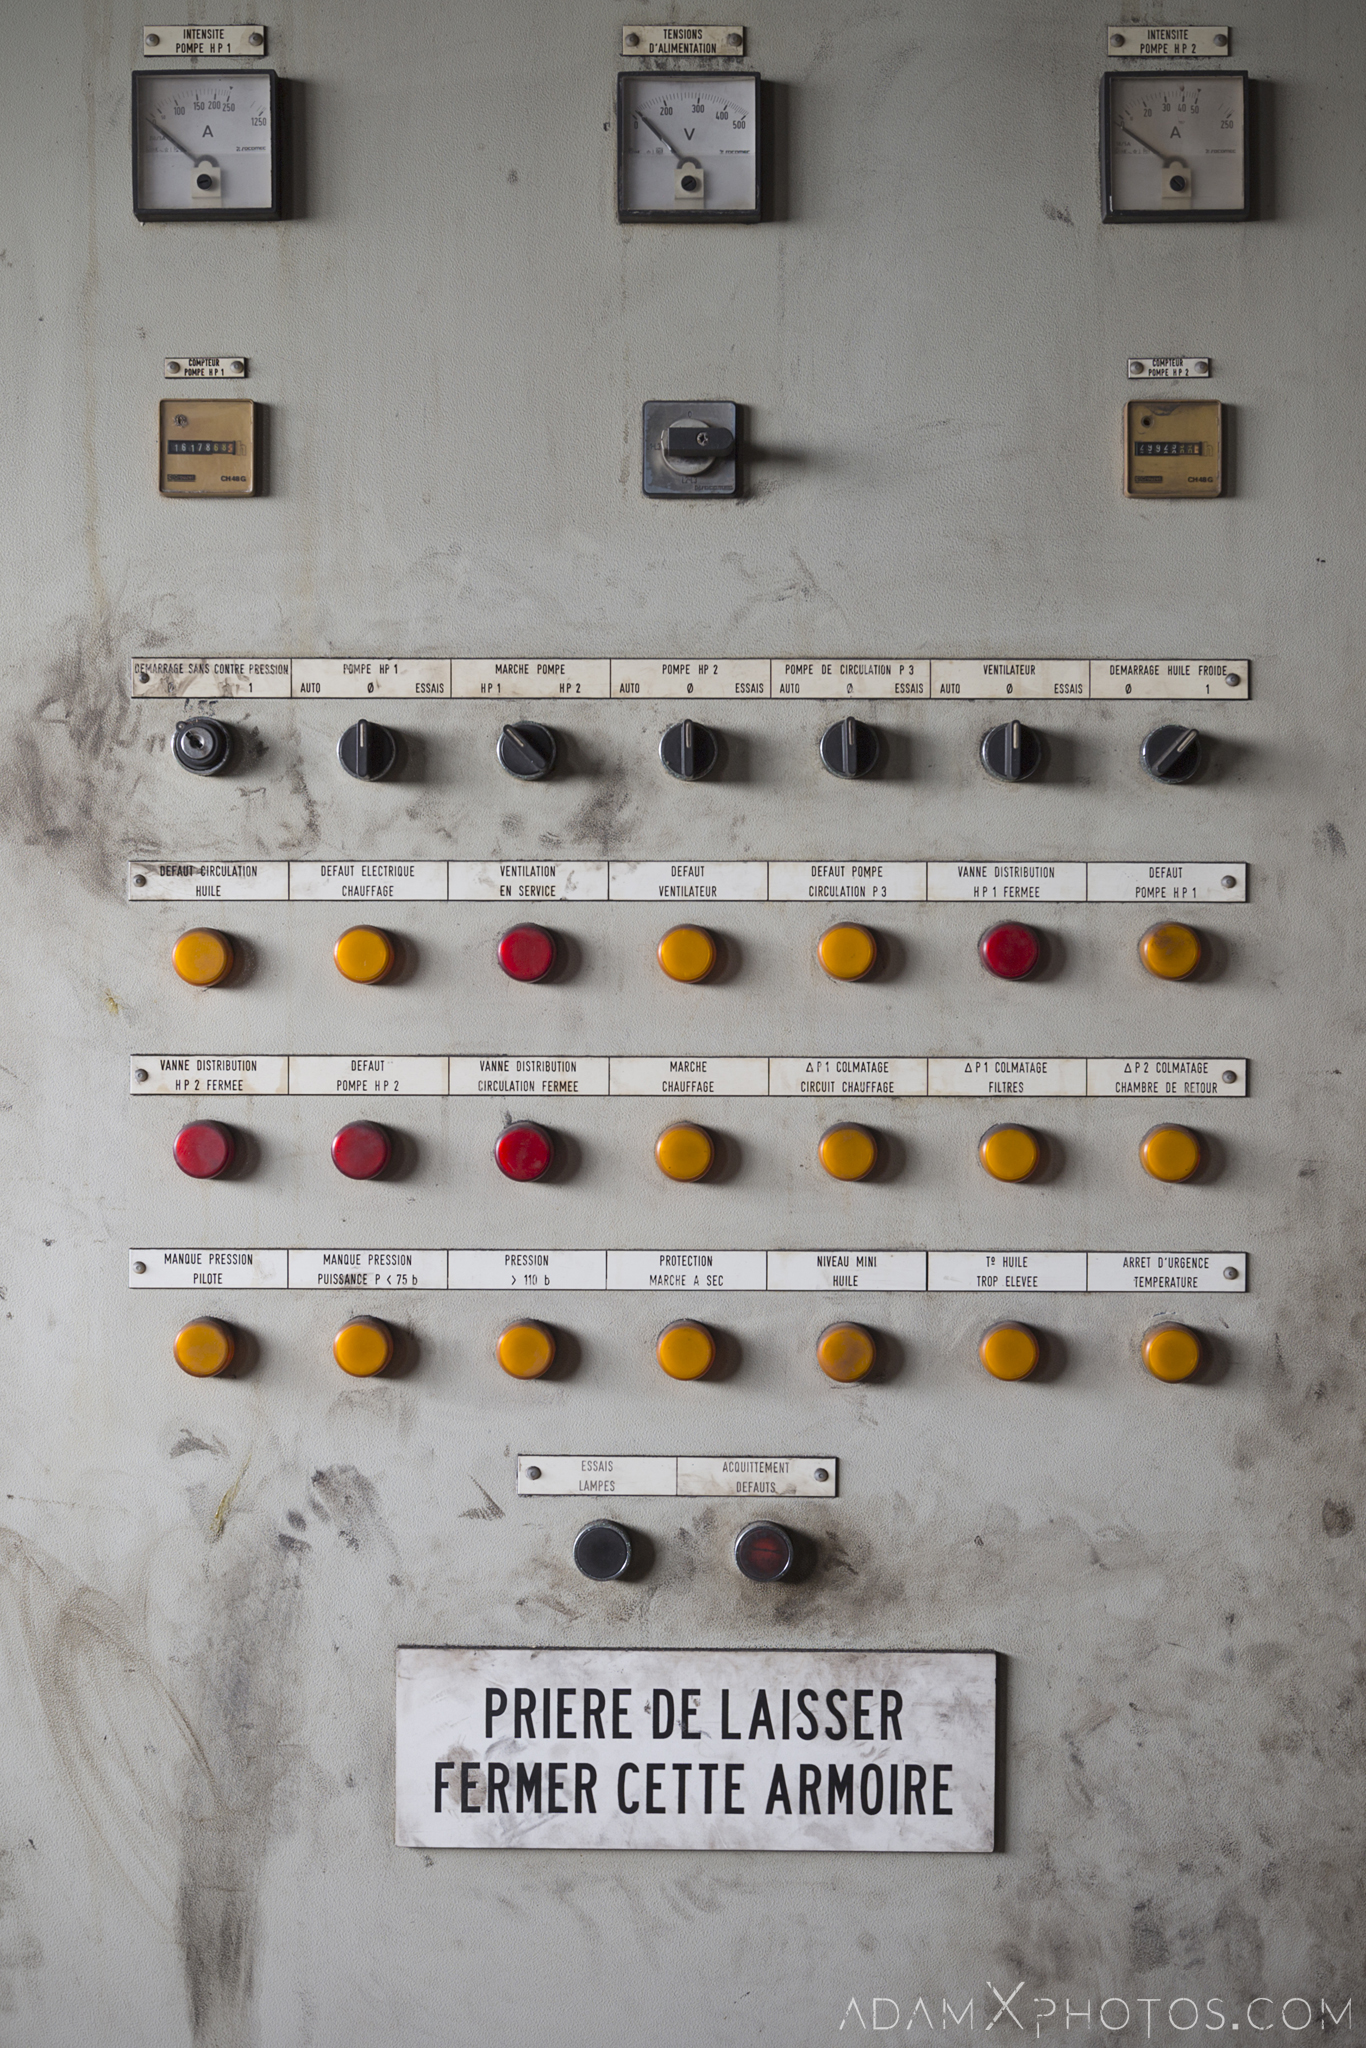 control panel bottom of blast furnace P3 HFX Florange Hayange ArcelorMittal blast furnaces steel works plant Industrial Industry Adam X Urbex Urban Exploration France Access 2017 Abandoned decay lost forgotten derelict location creepy haunting eerie